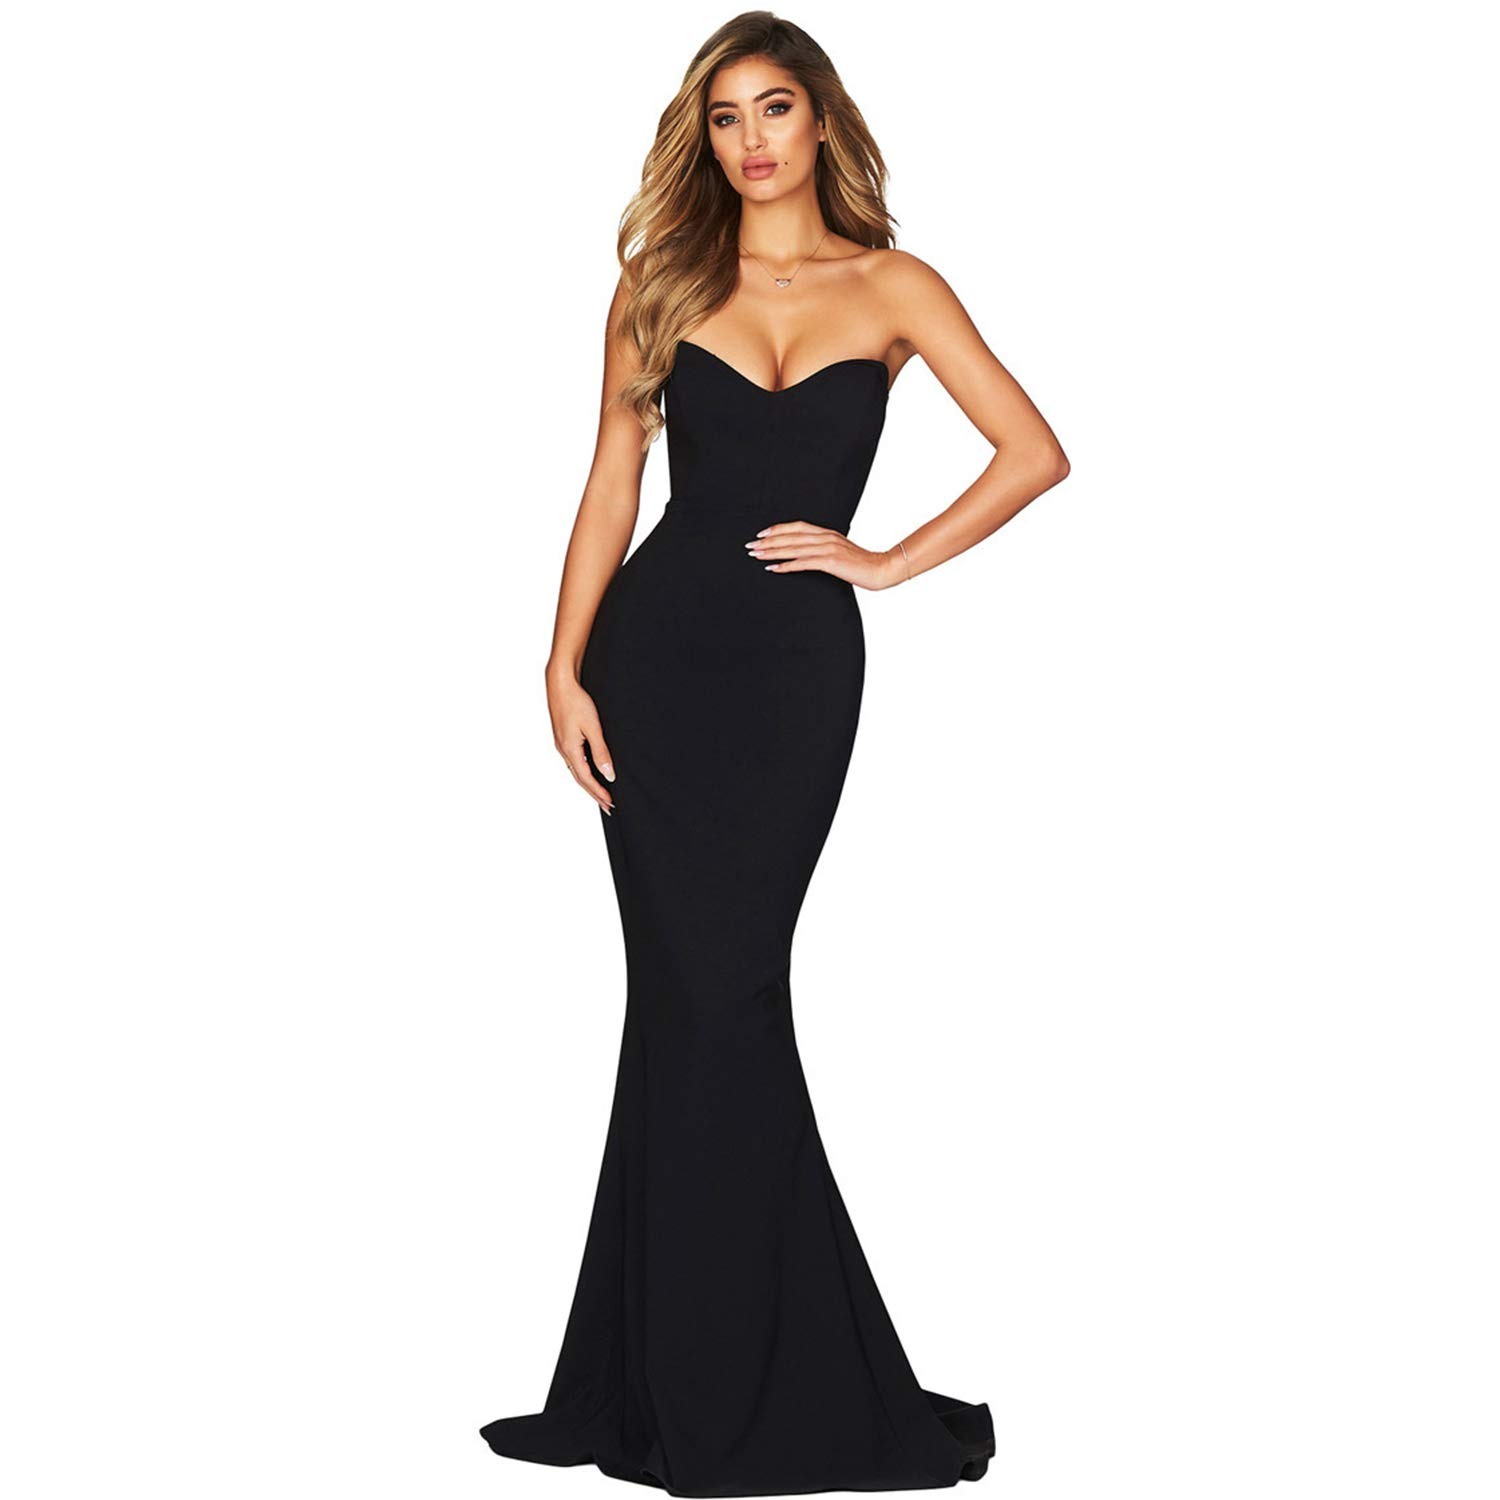 Black Women's Elegant Strapless Evening Dress Pure color Slim Long Dresses for Ladies Girls Cocktail Party Ball Gown Wear,Female Gift